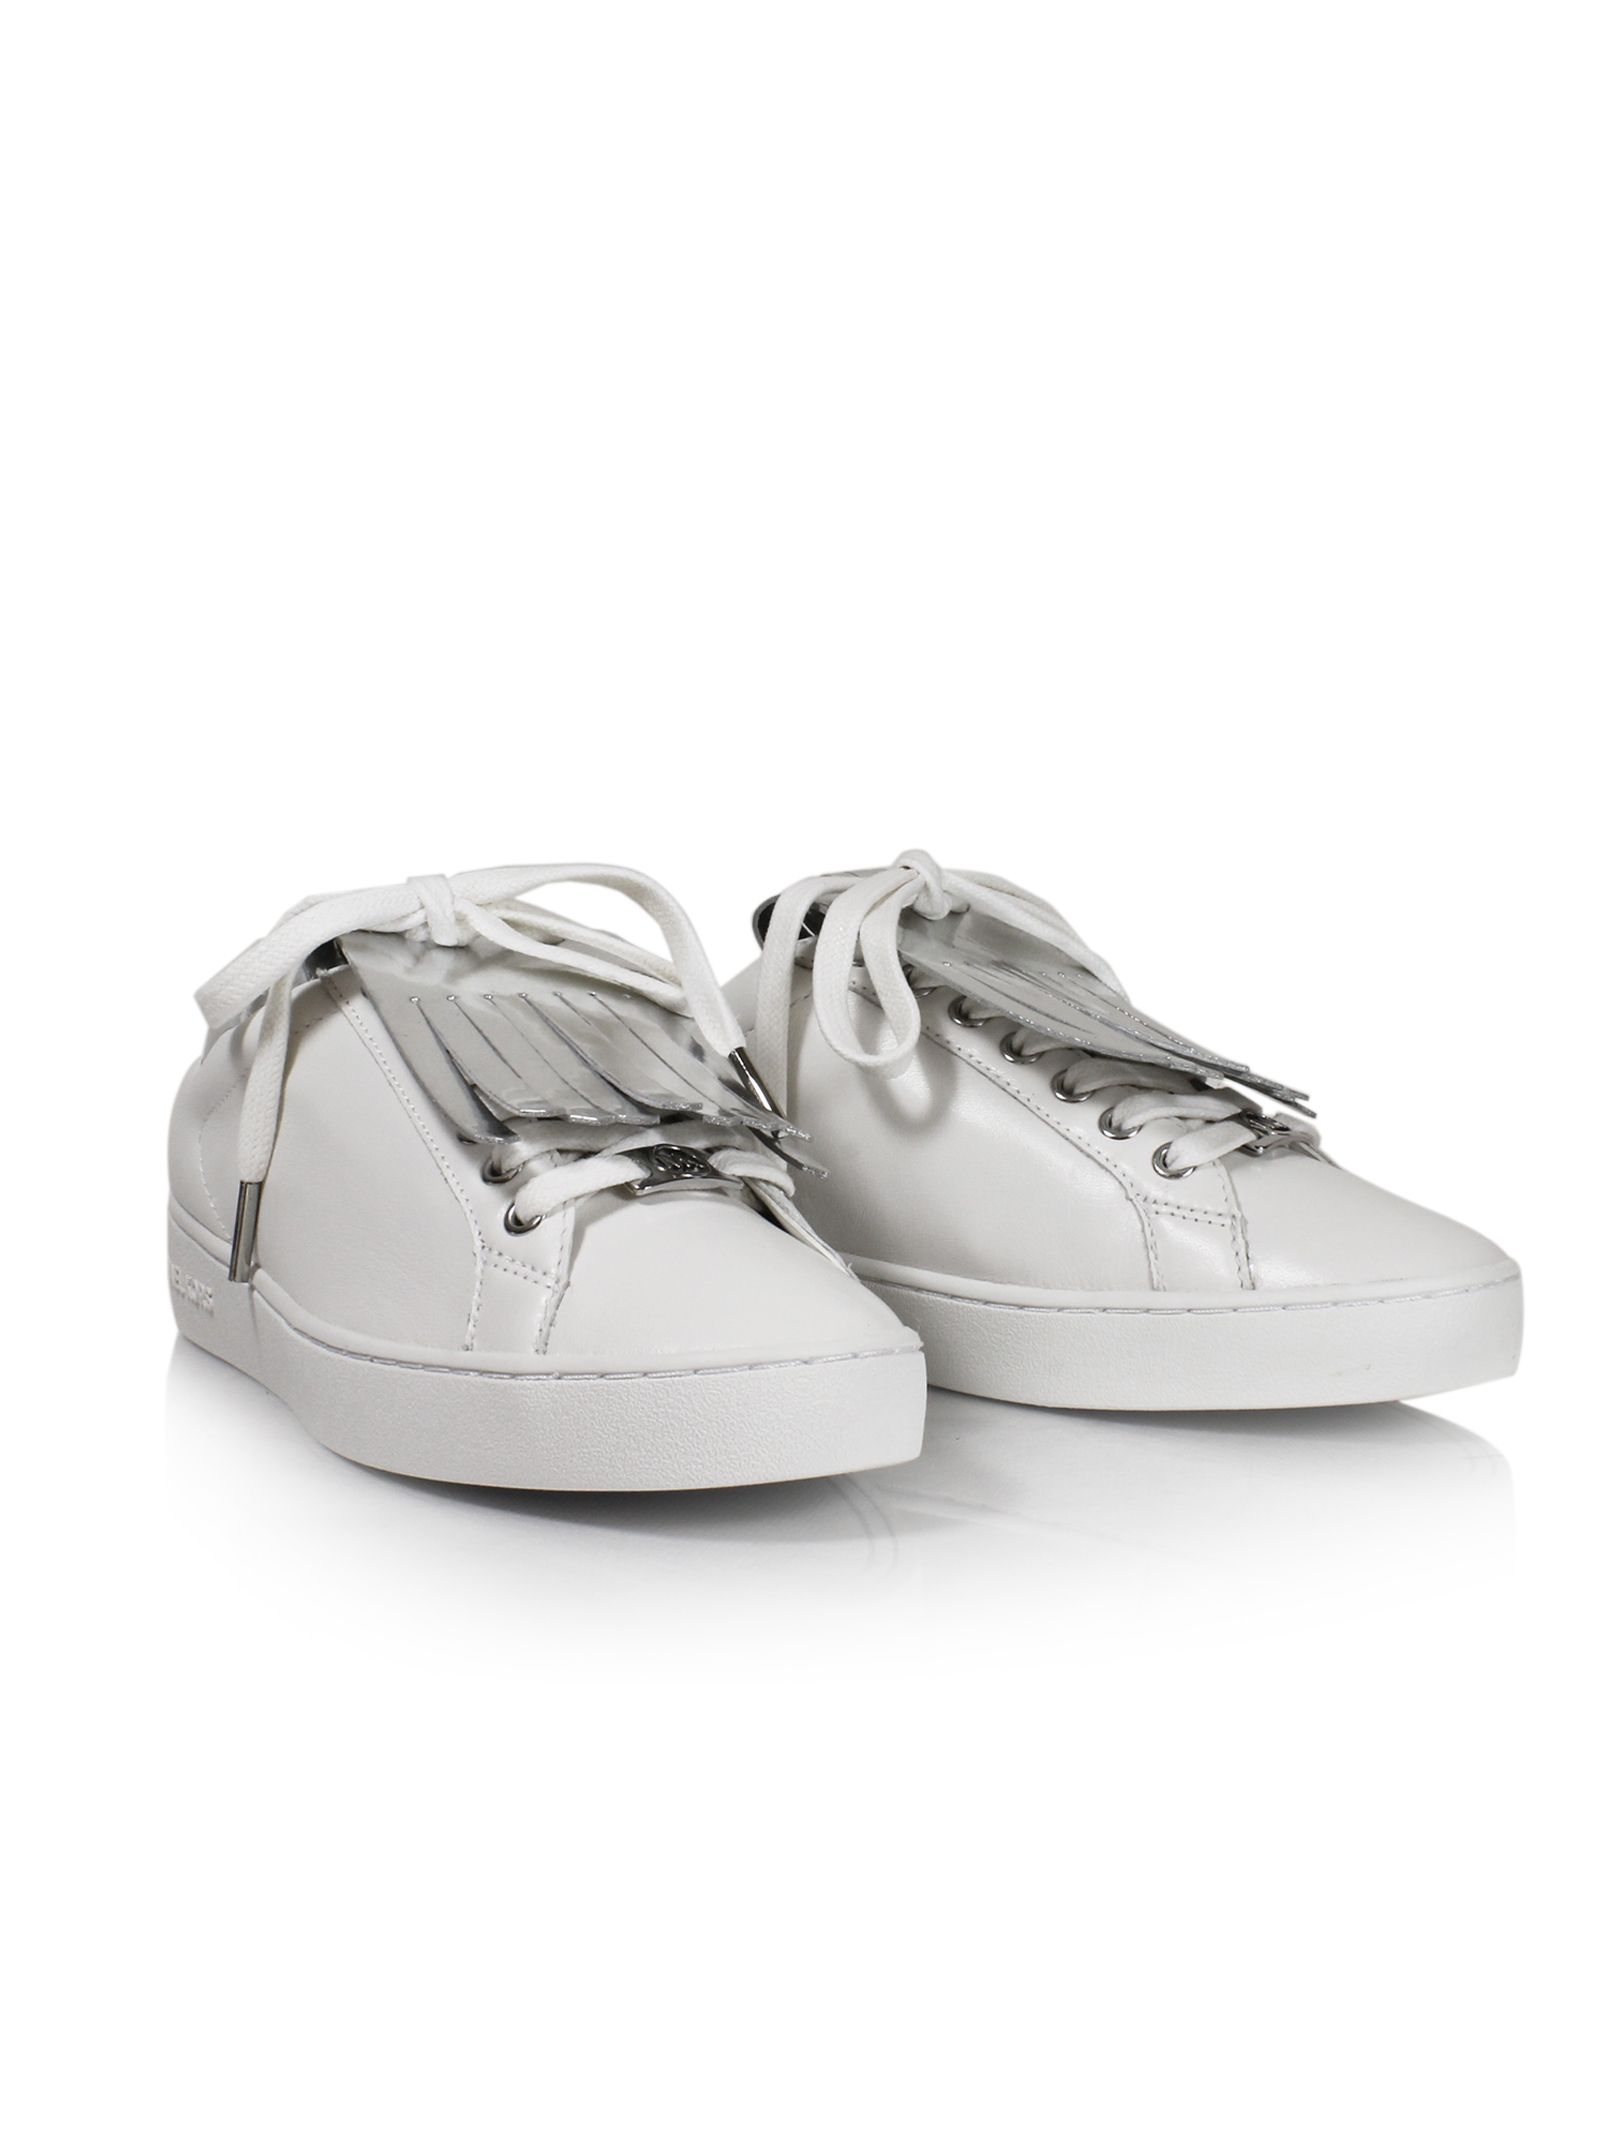 michael kors female 45900 optic white keaton kiltie sneakers